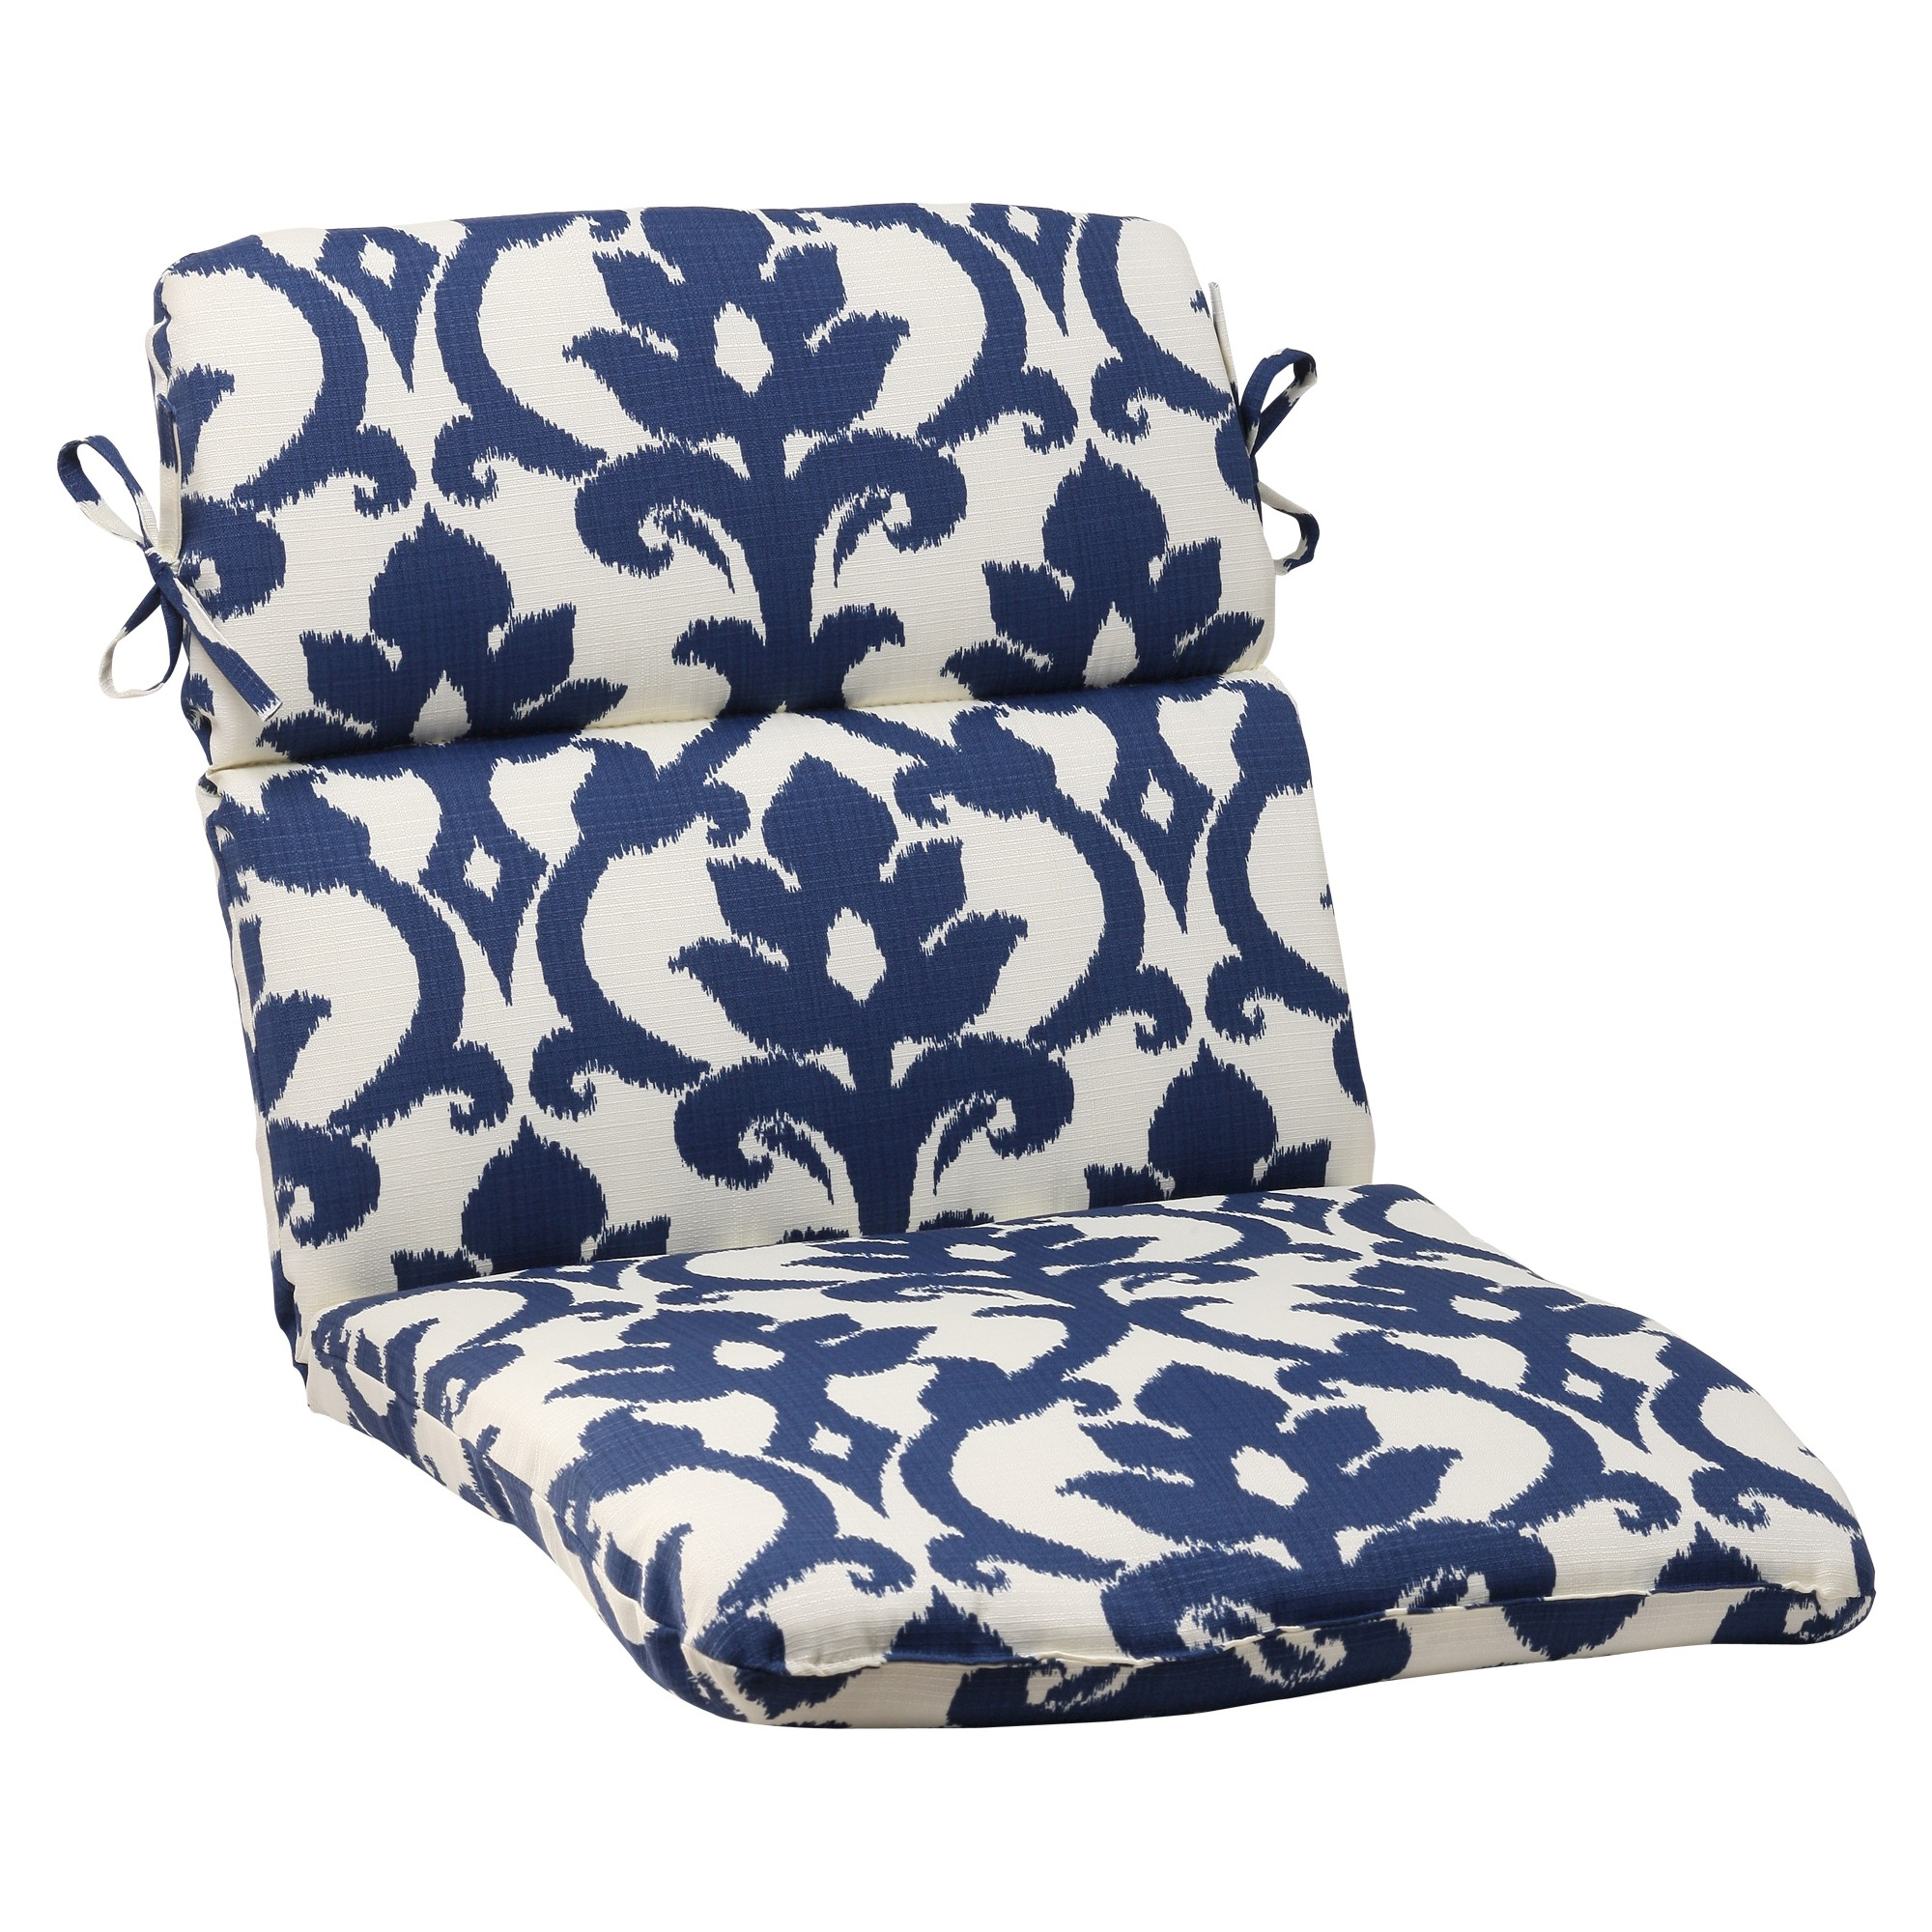 Outdoor Rounded Chair Cushion Blue/White Damask Round